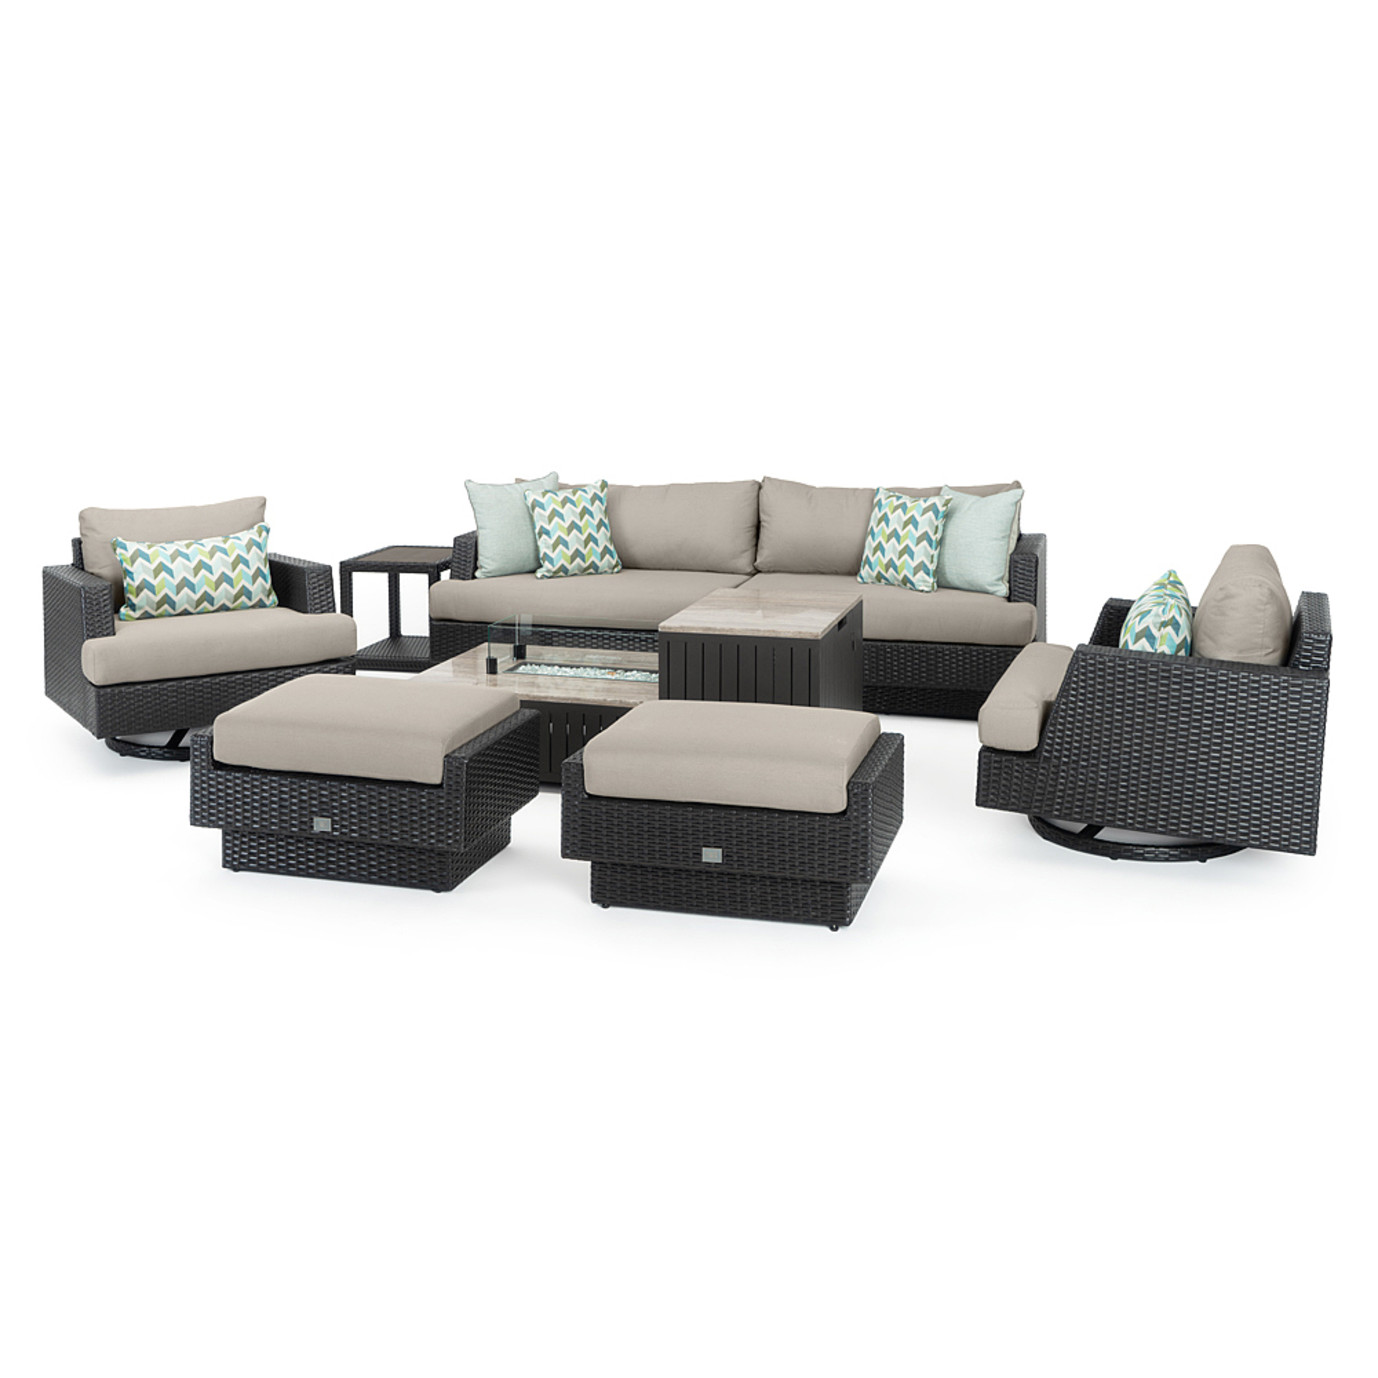 Portofino® Comfort 8 Piece Motion Fire Seating - Taupe Mist